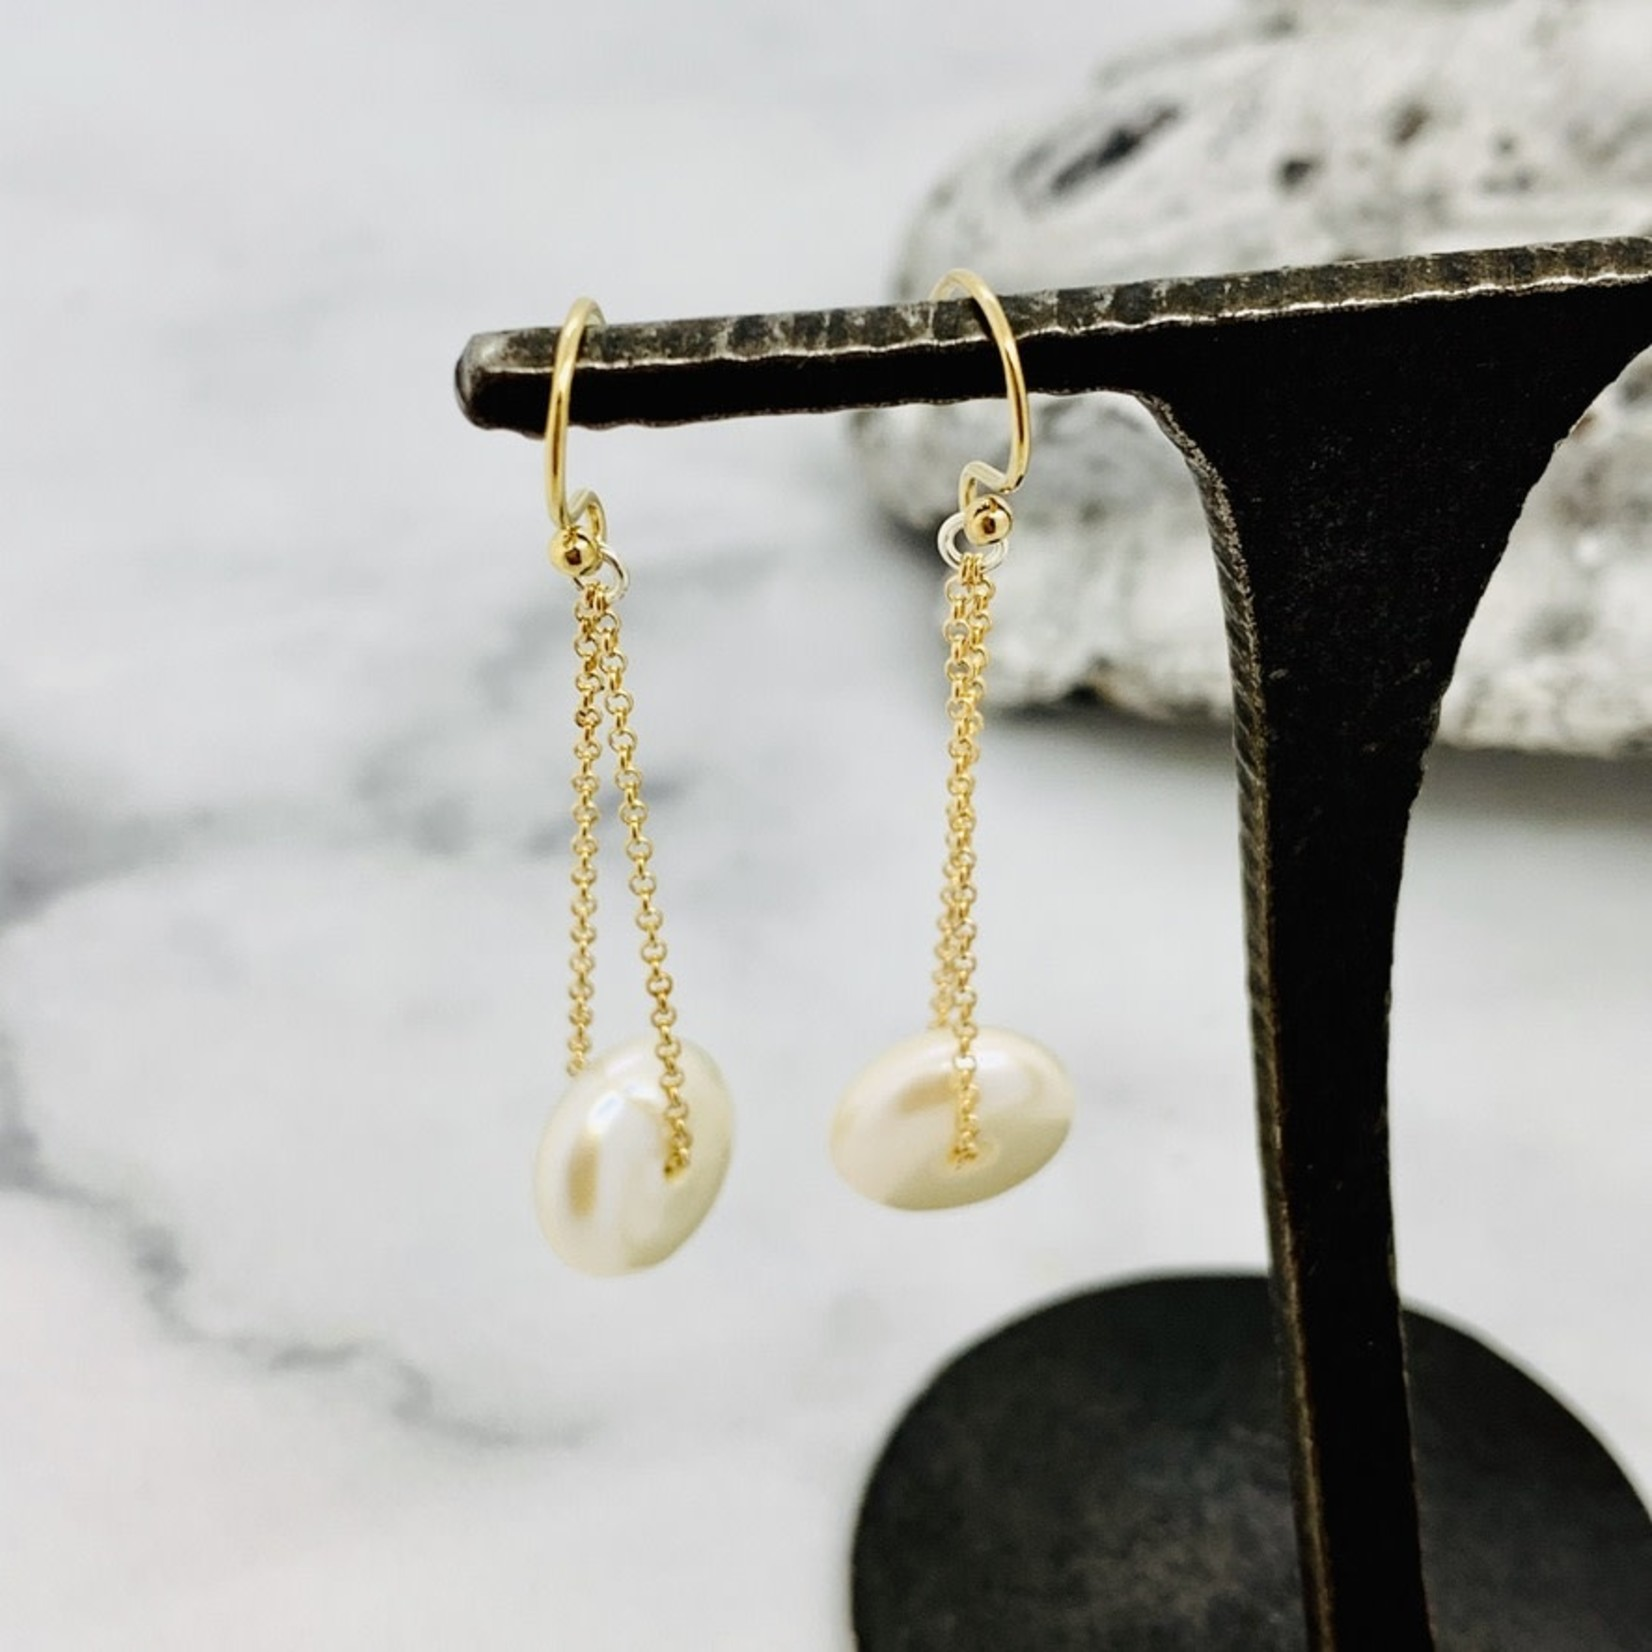 Handmade earrings with button pearl on 14 k g.f. chain